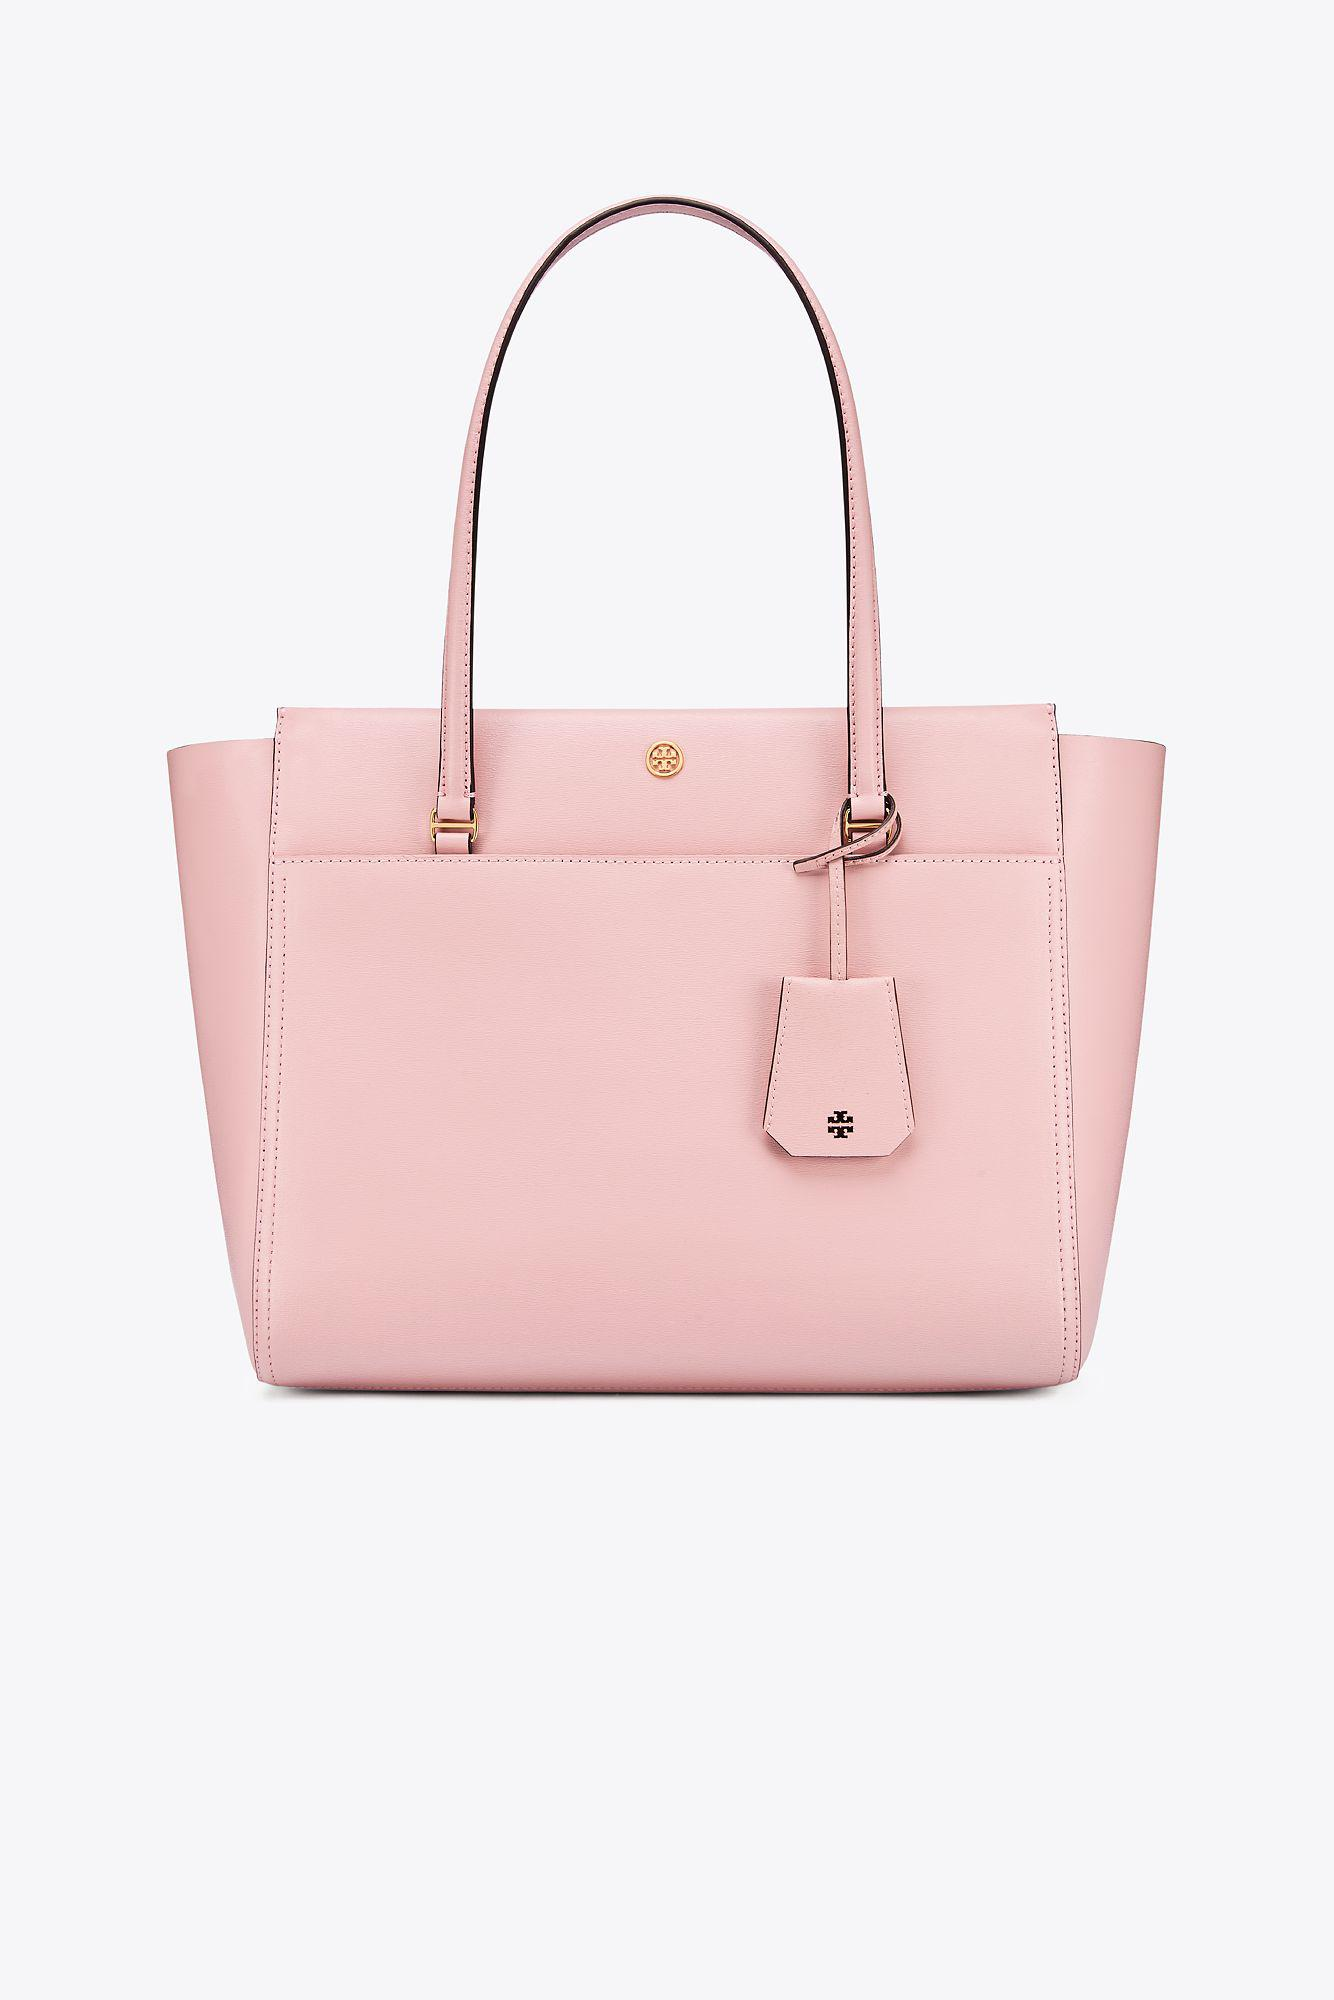 Tory Burch Parker Tote in Pink - Lyst 12d3bca8e7